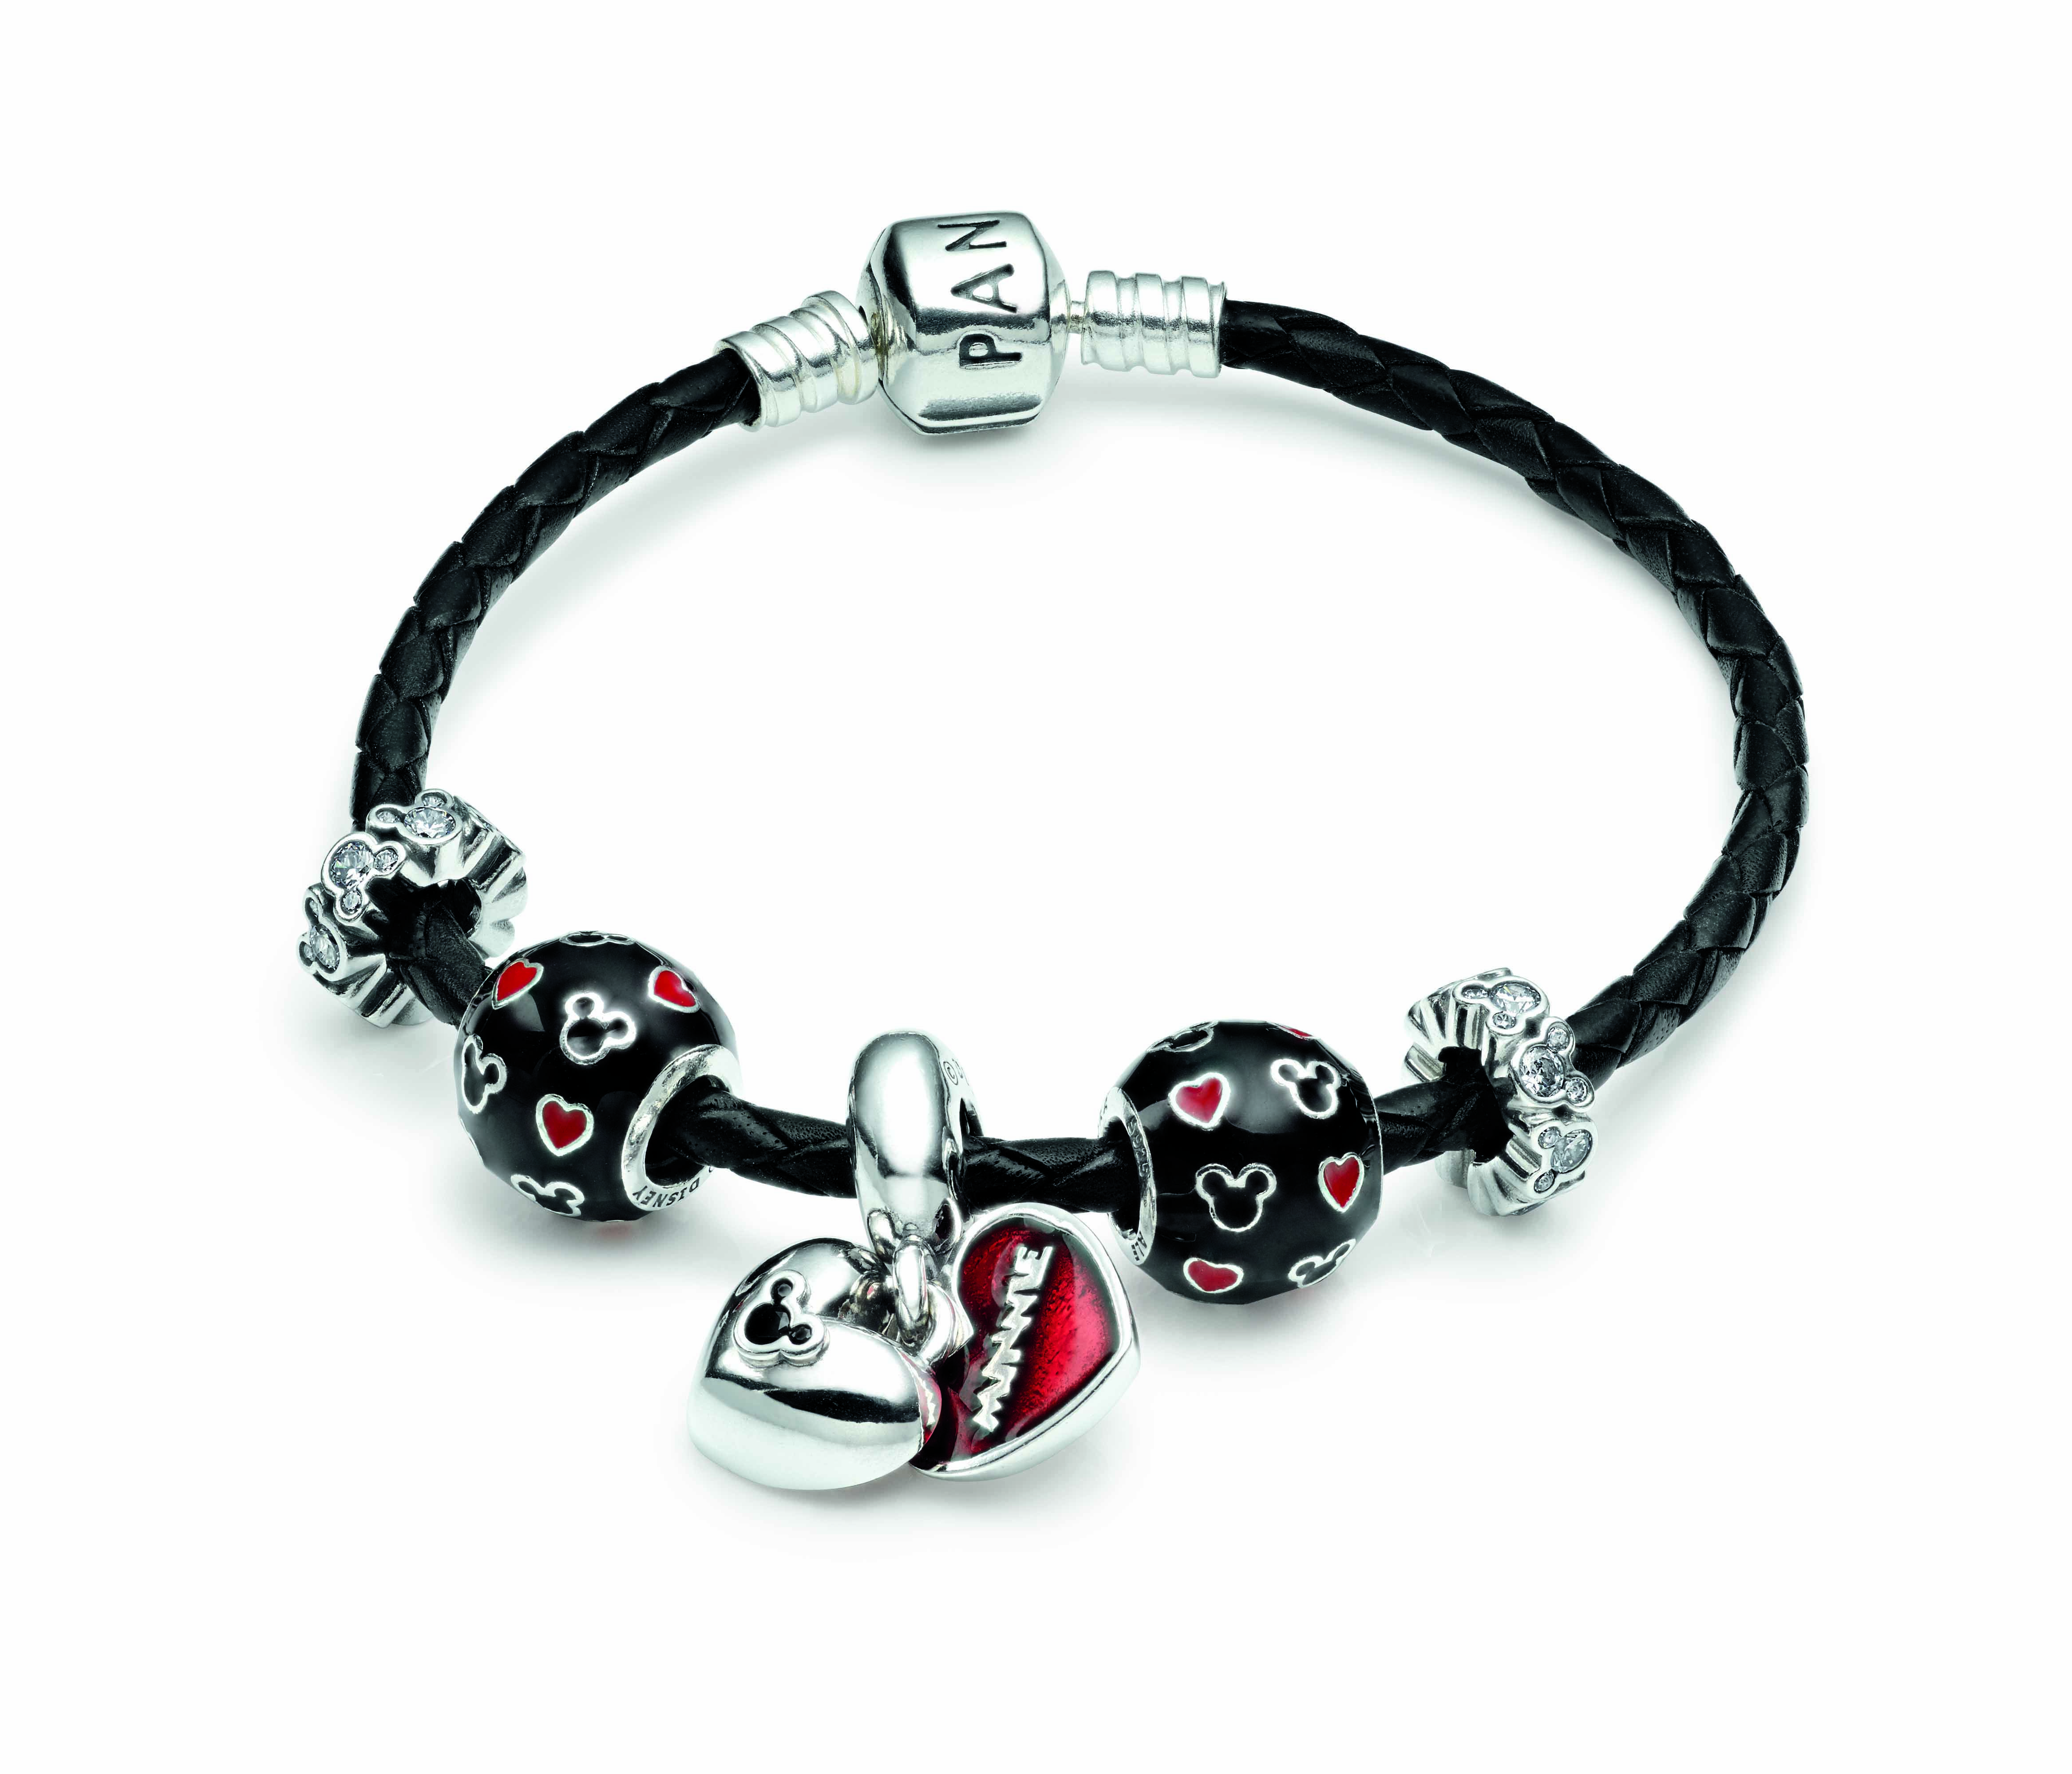 Black leather bracelet with Disney charms Black Red Silver